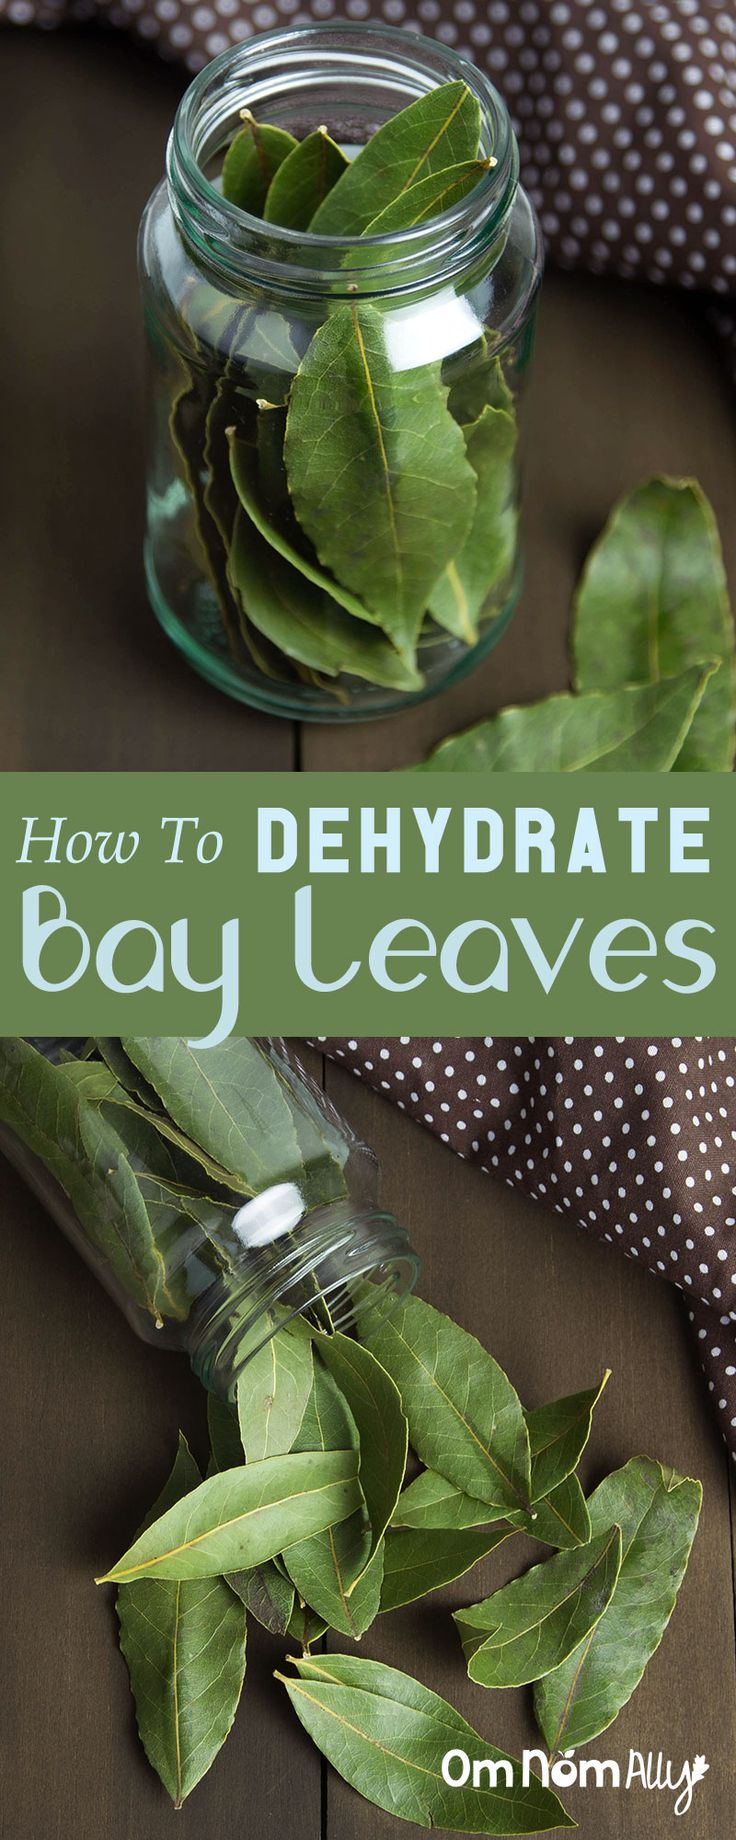 How To Dehydrate Bay Leaves @OmNomAlly    While fresh off the tree is best, dehydrating your bay leaves is a great long-term storage idea for the best soups, stocks and stews of your life!   Know someone with a bay tree? Beg them for some of the fresh stuff - it's phenomenal!  Have a tree and know some foodie friends? Dehydrating them some leaves is a fantastic present that every home cook will adore you for ;)